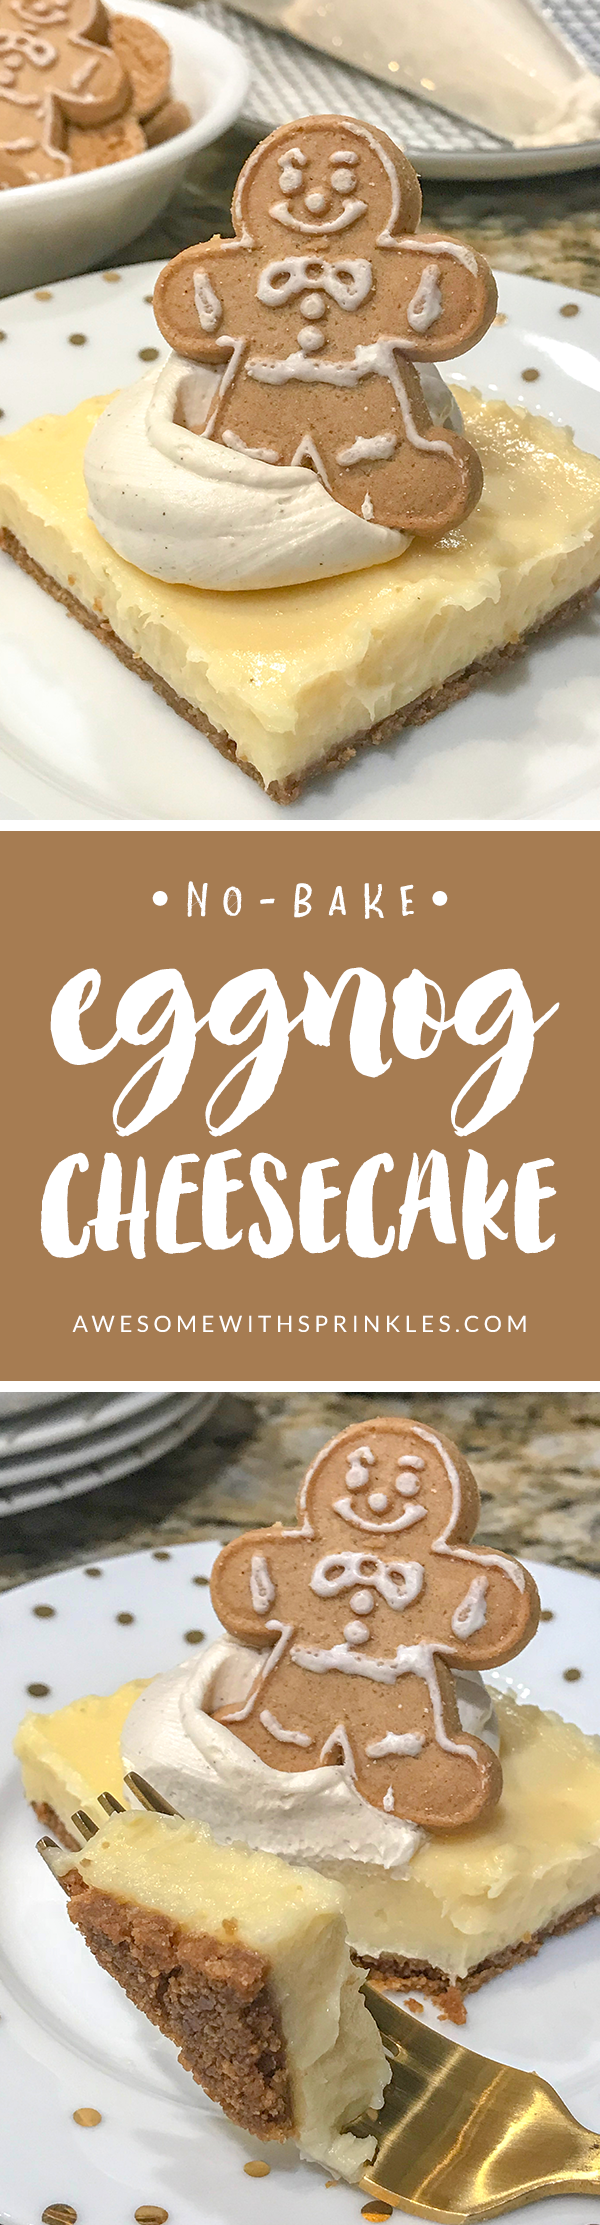 Easy No-Bake Eggnog Cheesecake will be your new holiday favorite! | Awesome with Sprinkles